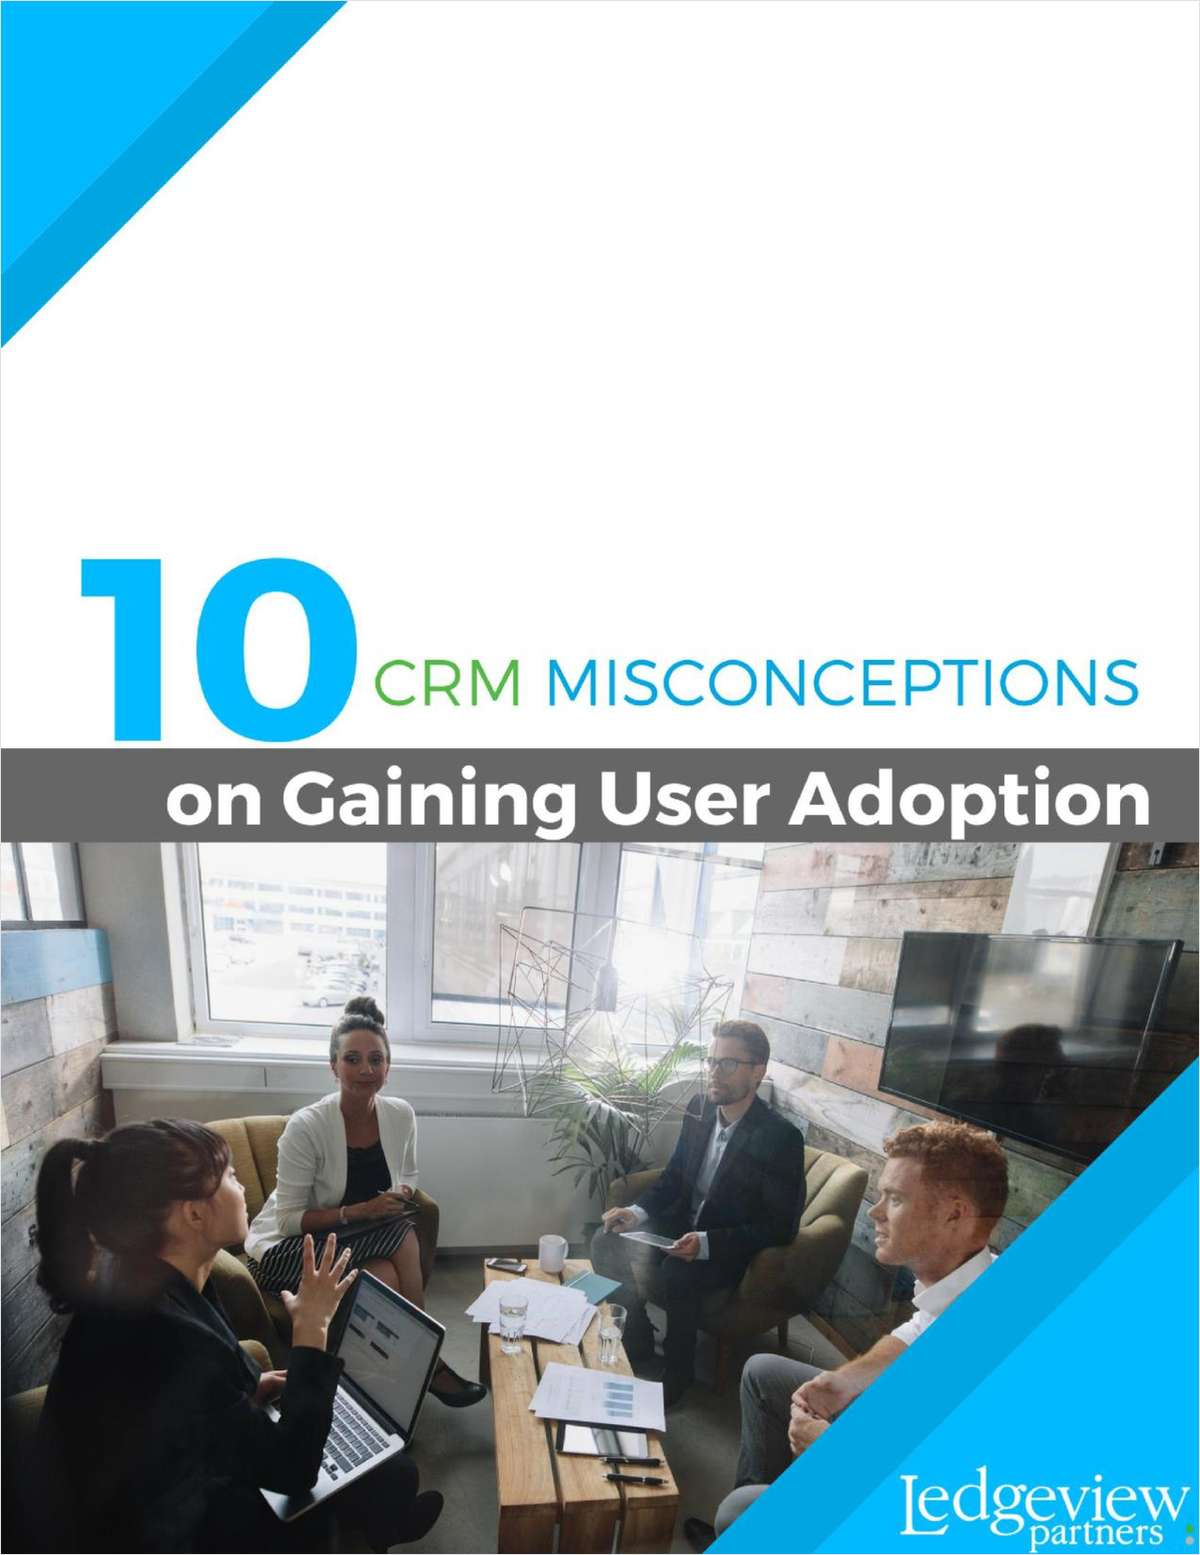 10 CRM Misconceptions on Gaining User Adoption